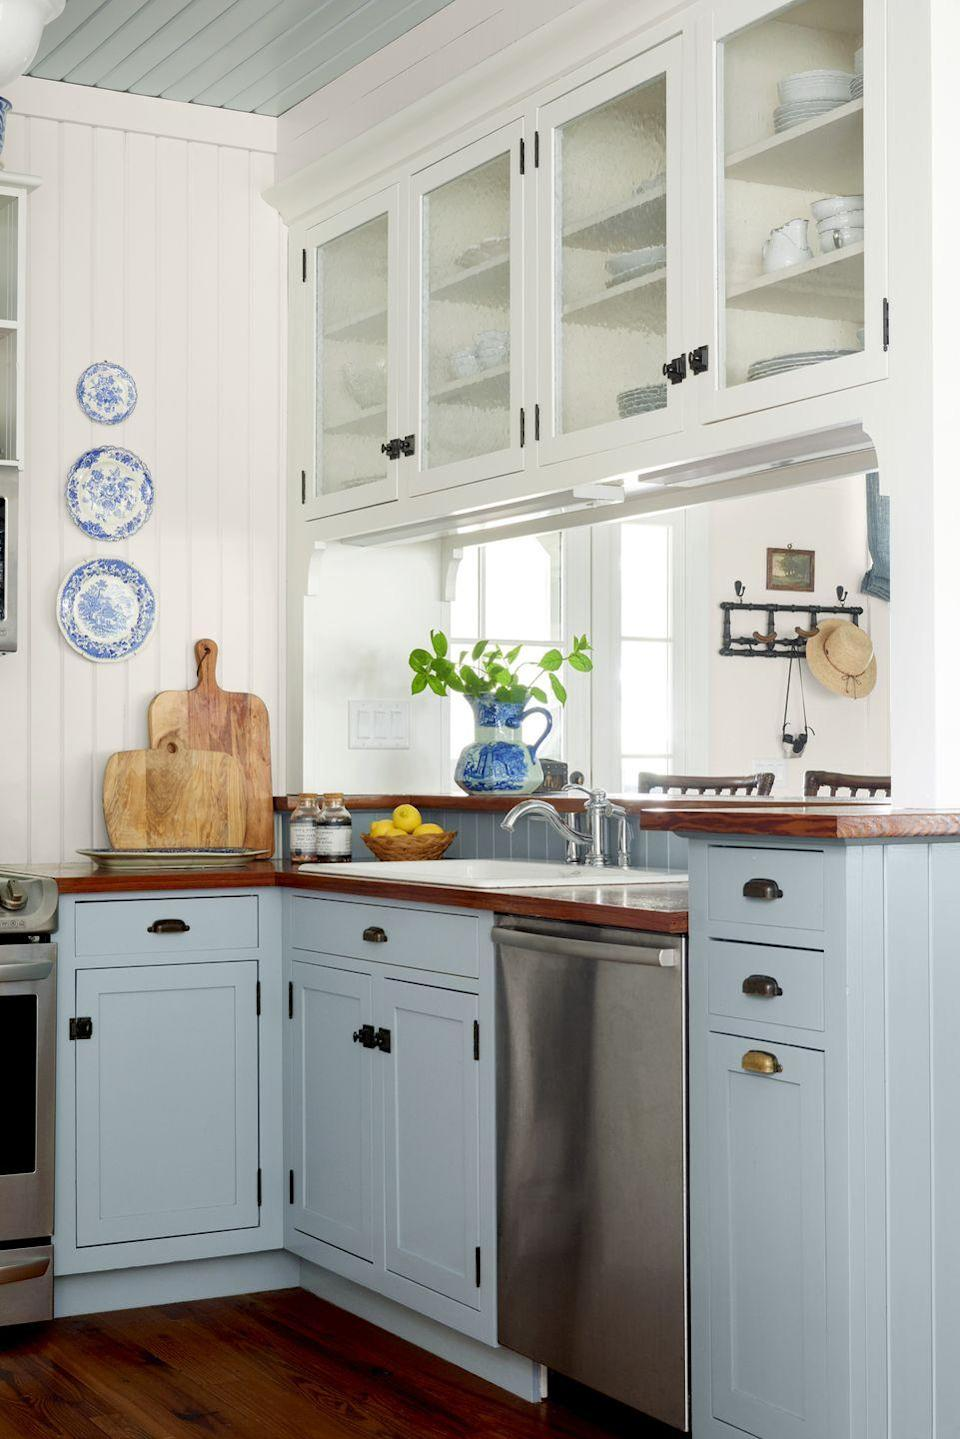 """<p>Air out an itty-bitty kitchen with two-tone cabinets. Designer Heather Chadduck Hillegas outfitted this small space with <a href=""""https://www.sherwin-williams.com/homeowners/color/find-and-explore-colors/paint-colors-by-family/SW0050-classic-light-buff"""" rel=""""nofollow noopener"""" target=""""_blank"""" data-ylk=""""slk:Classic Light Buff by Sherwin-Williams"""" class=""""link rapid-noclick-resp"""">Classic Light Buff by Sherwin-Williams</a> on the upper cabinets and <a href=""""https://www.sherwin-williams.com/homeowners/color/find-and-explore-colors/paint-colors-by-family/SW9139"""" rel=""""nofollow noopener"""" target=""""_blank"""" data-ylk=""""slk:Debonair by Sherwin-Williams"""" class=""""link rapid-noclick-resp"""">Debonair by Sherwin-Williams</a> on the lower cabinets.</p>"""